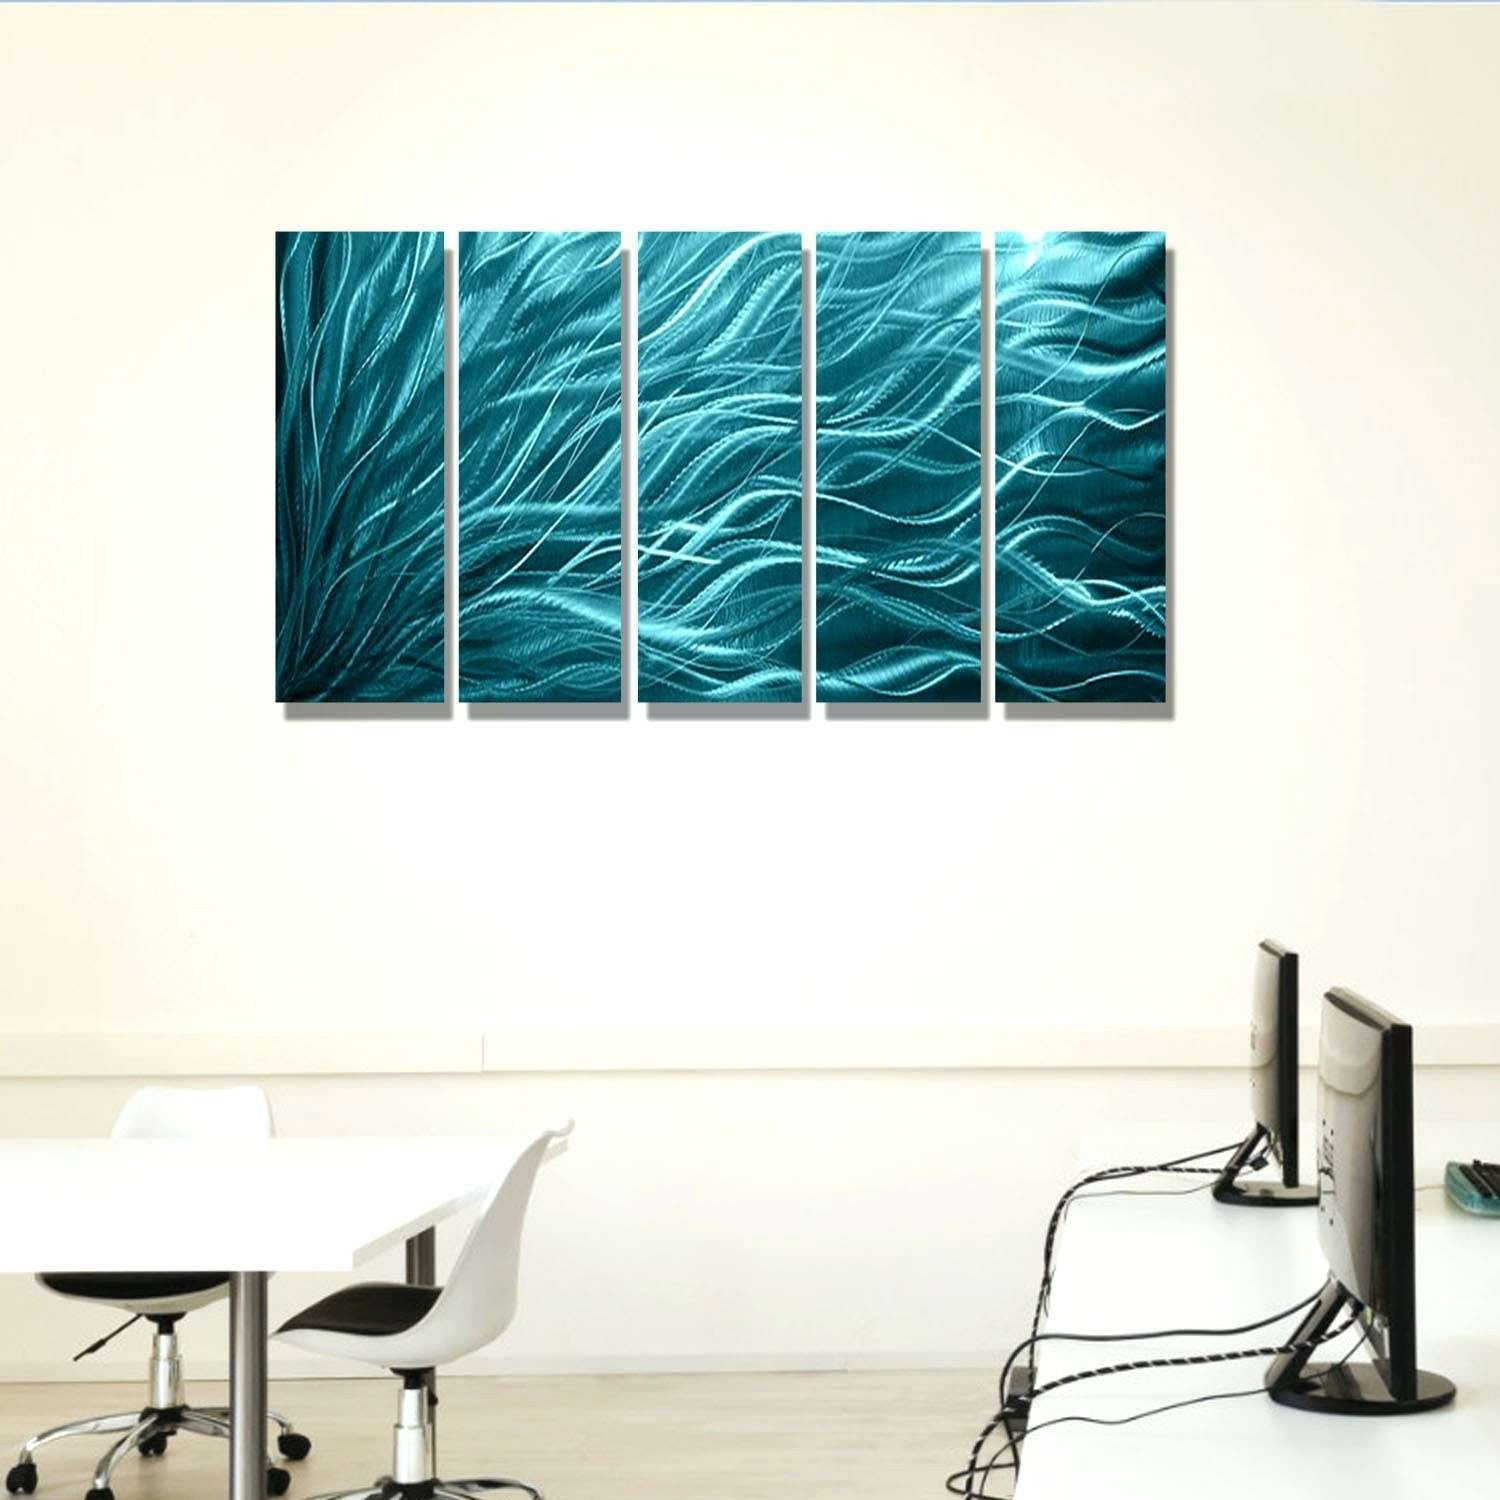 Lovely Inexpensive Wall Art | Ahome intended for Most Recently Released Inexpensive Wall Art